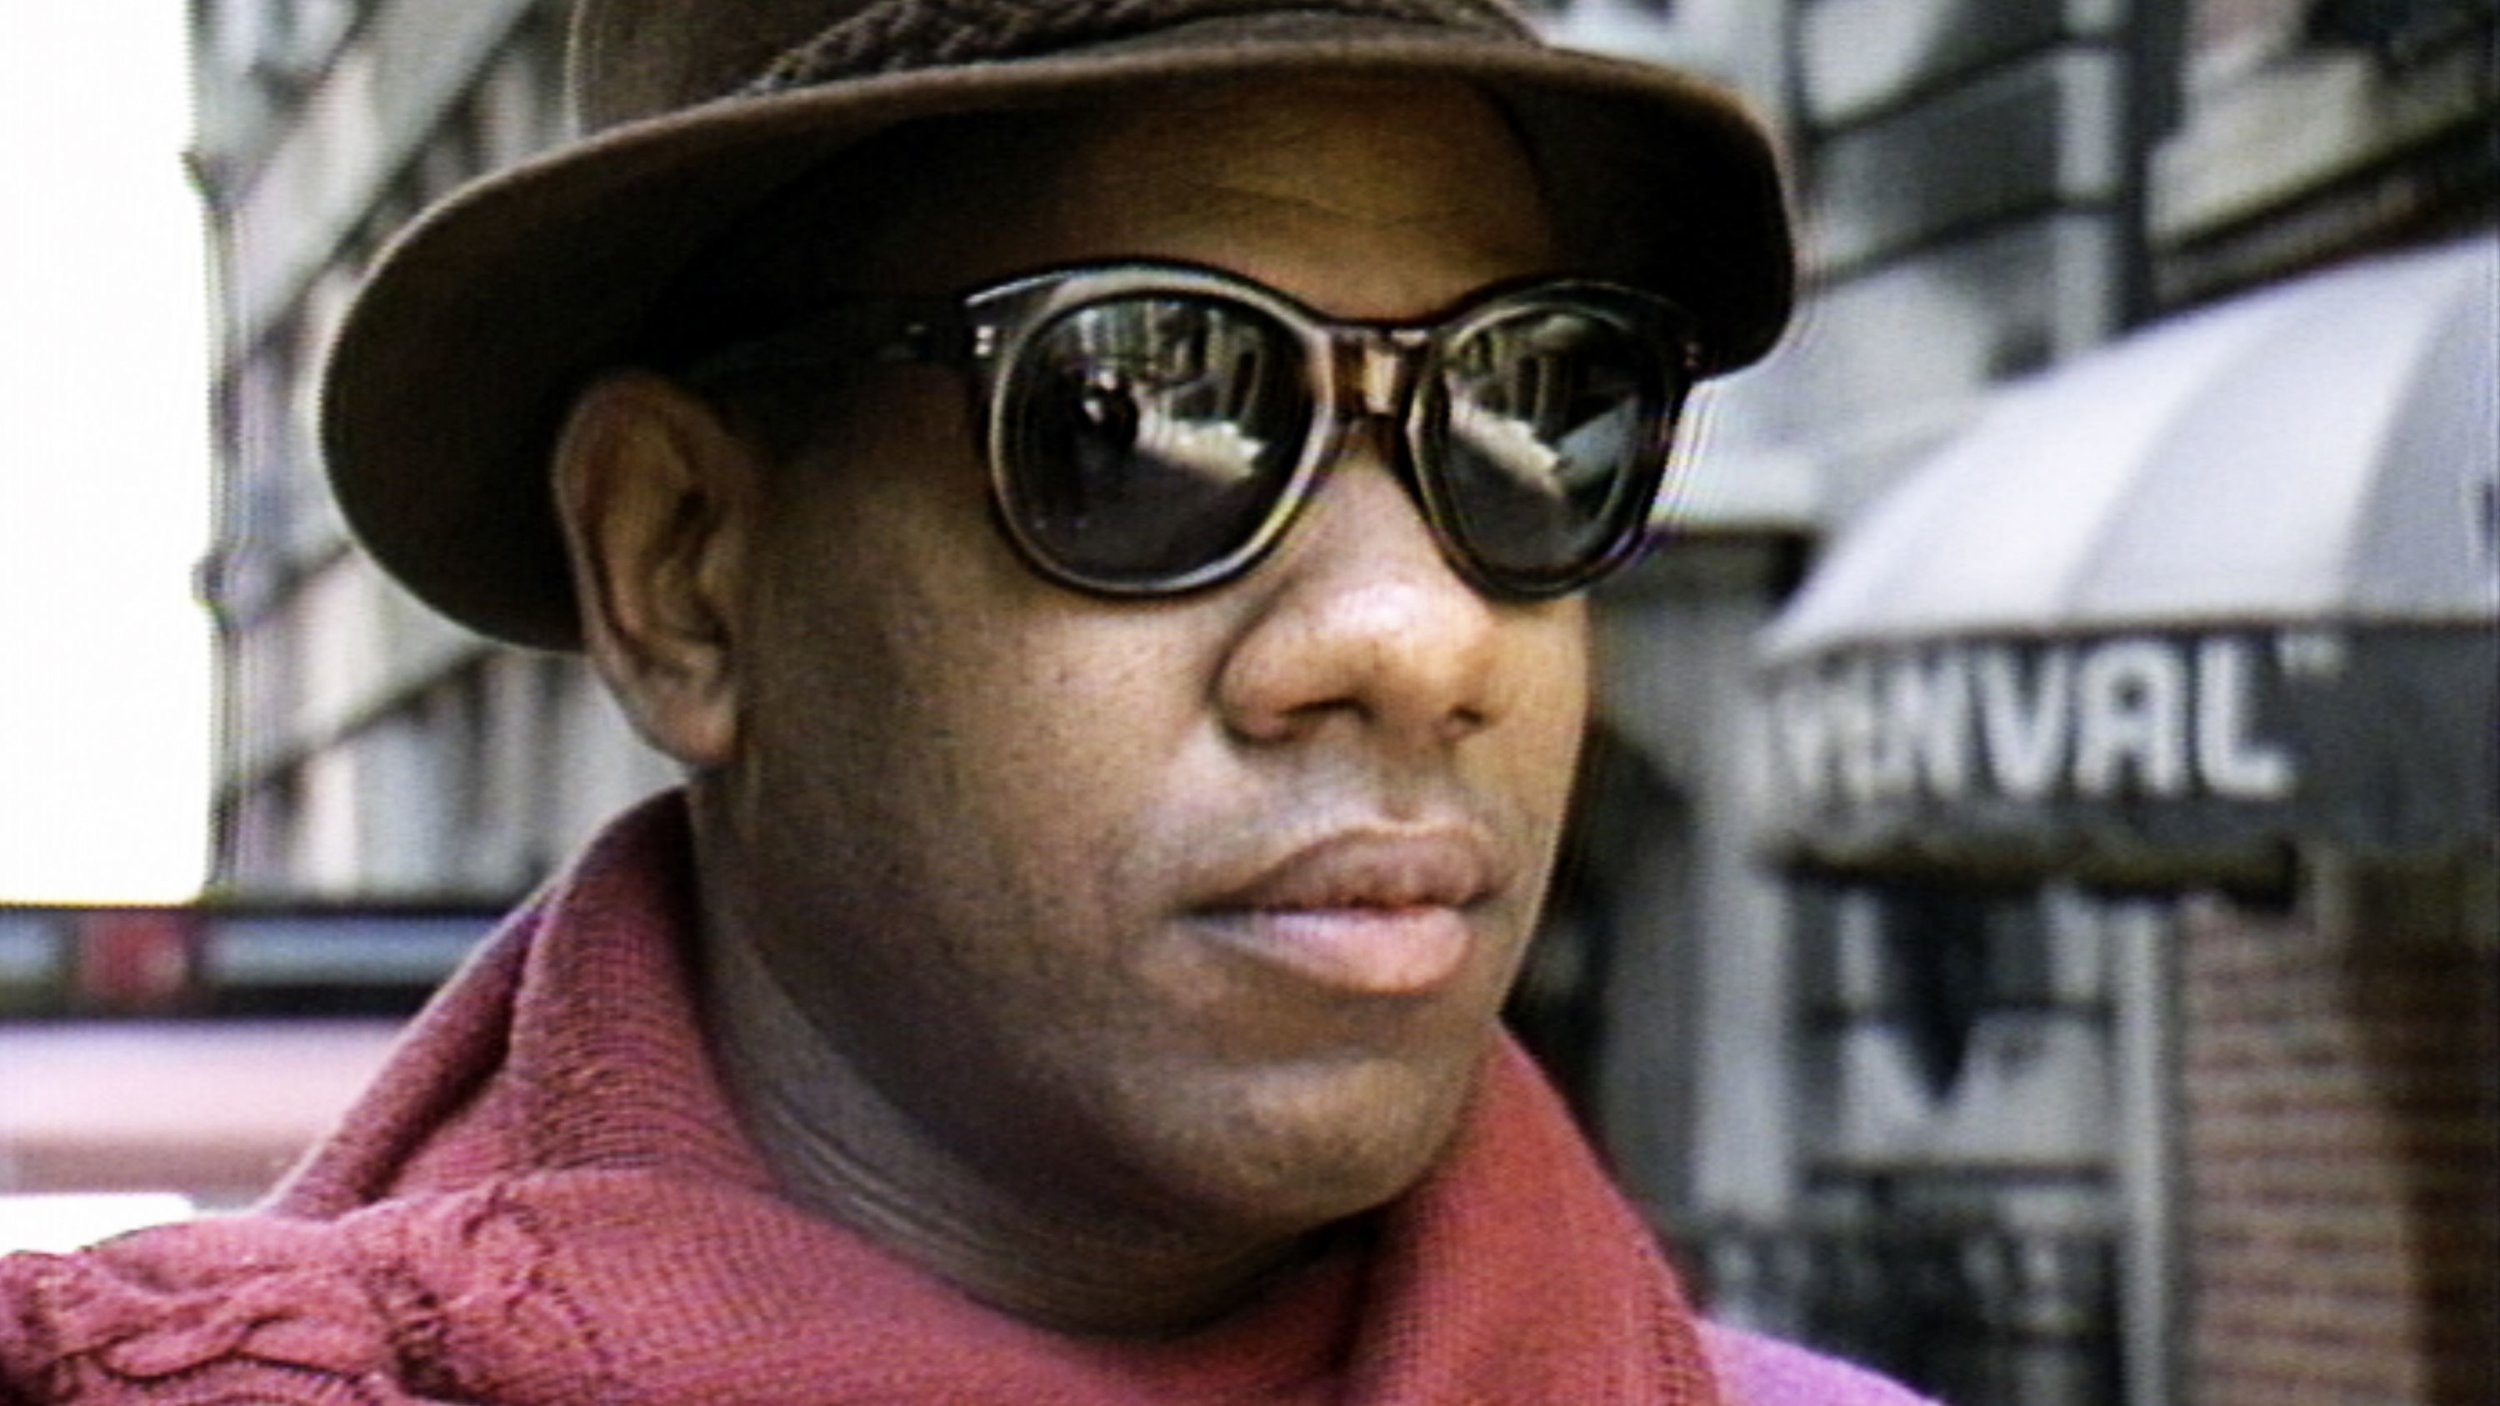 Andre Leon Talley's career has taken him to the fashion capitals of the world. Image supplied.